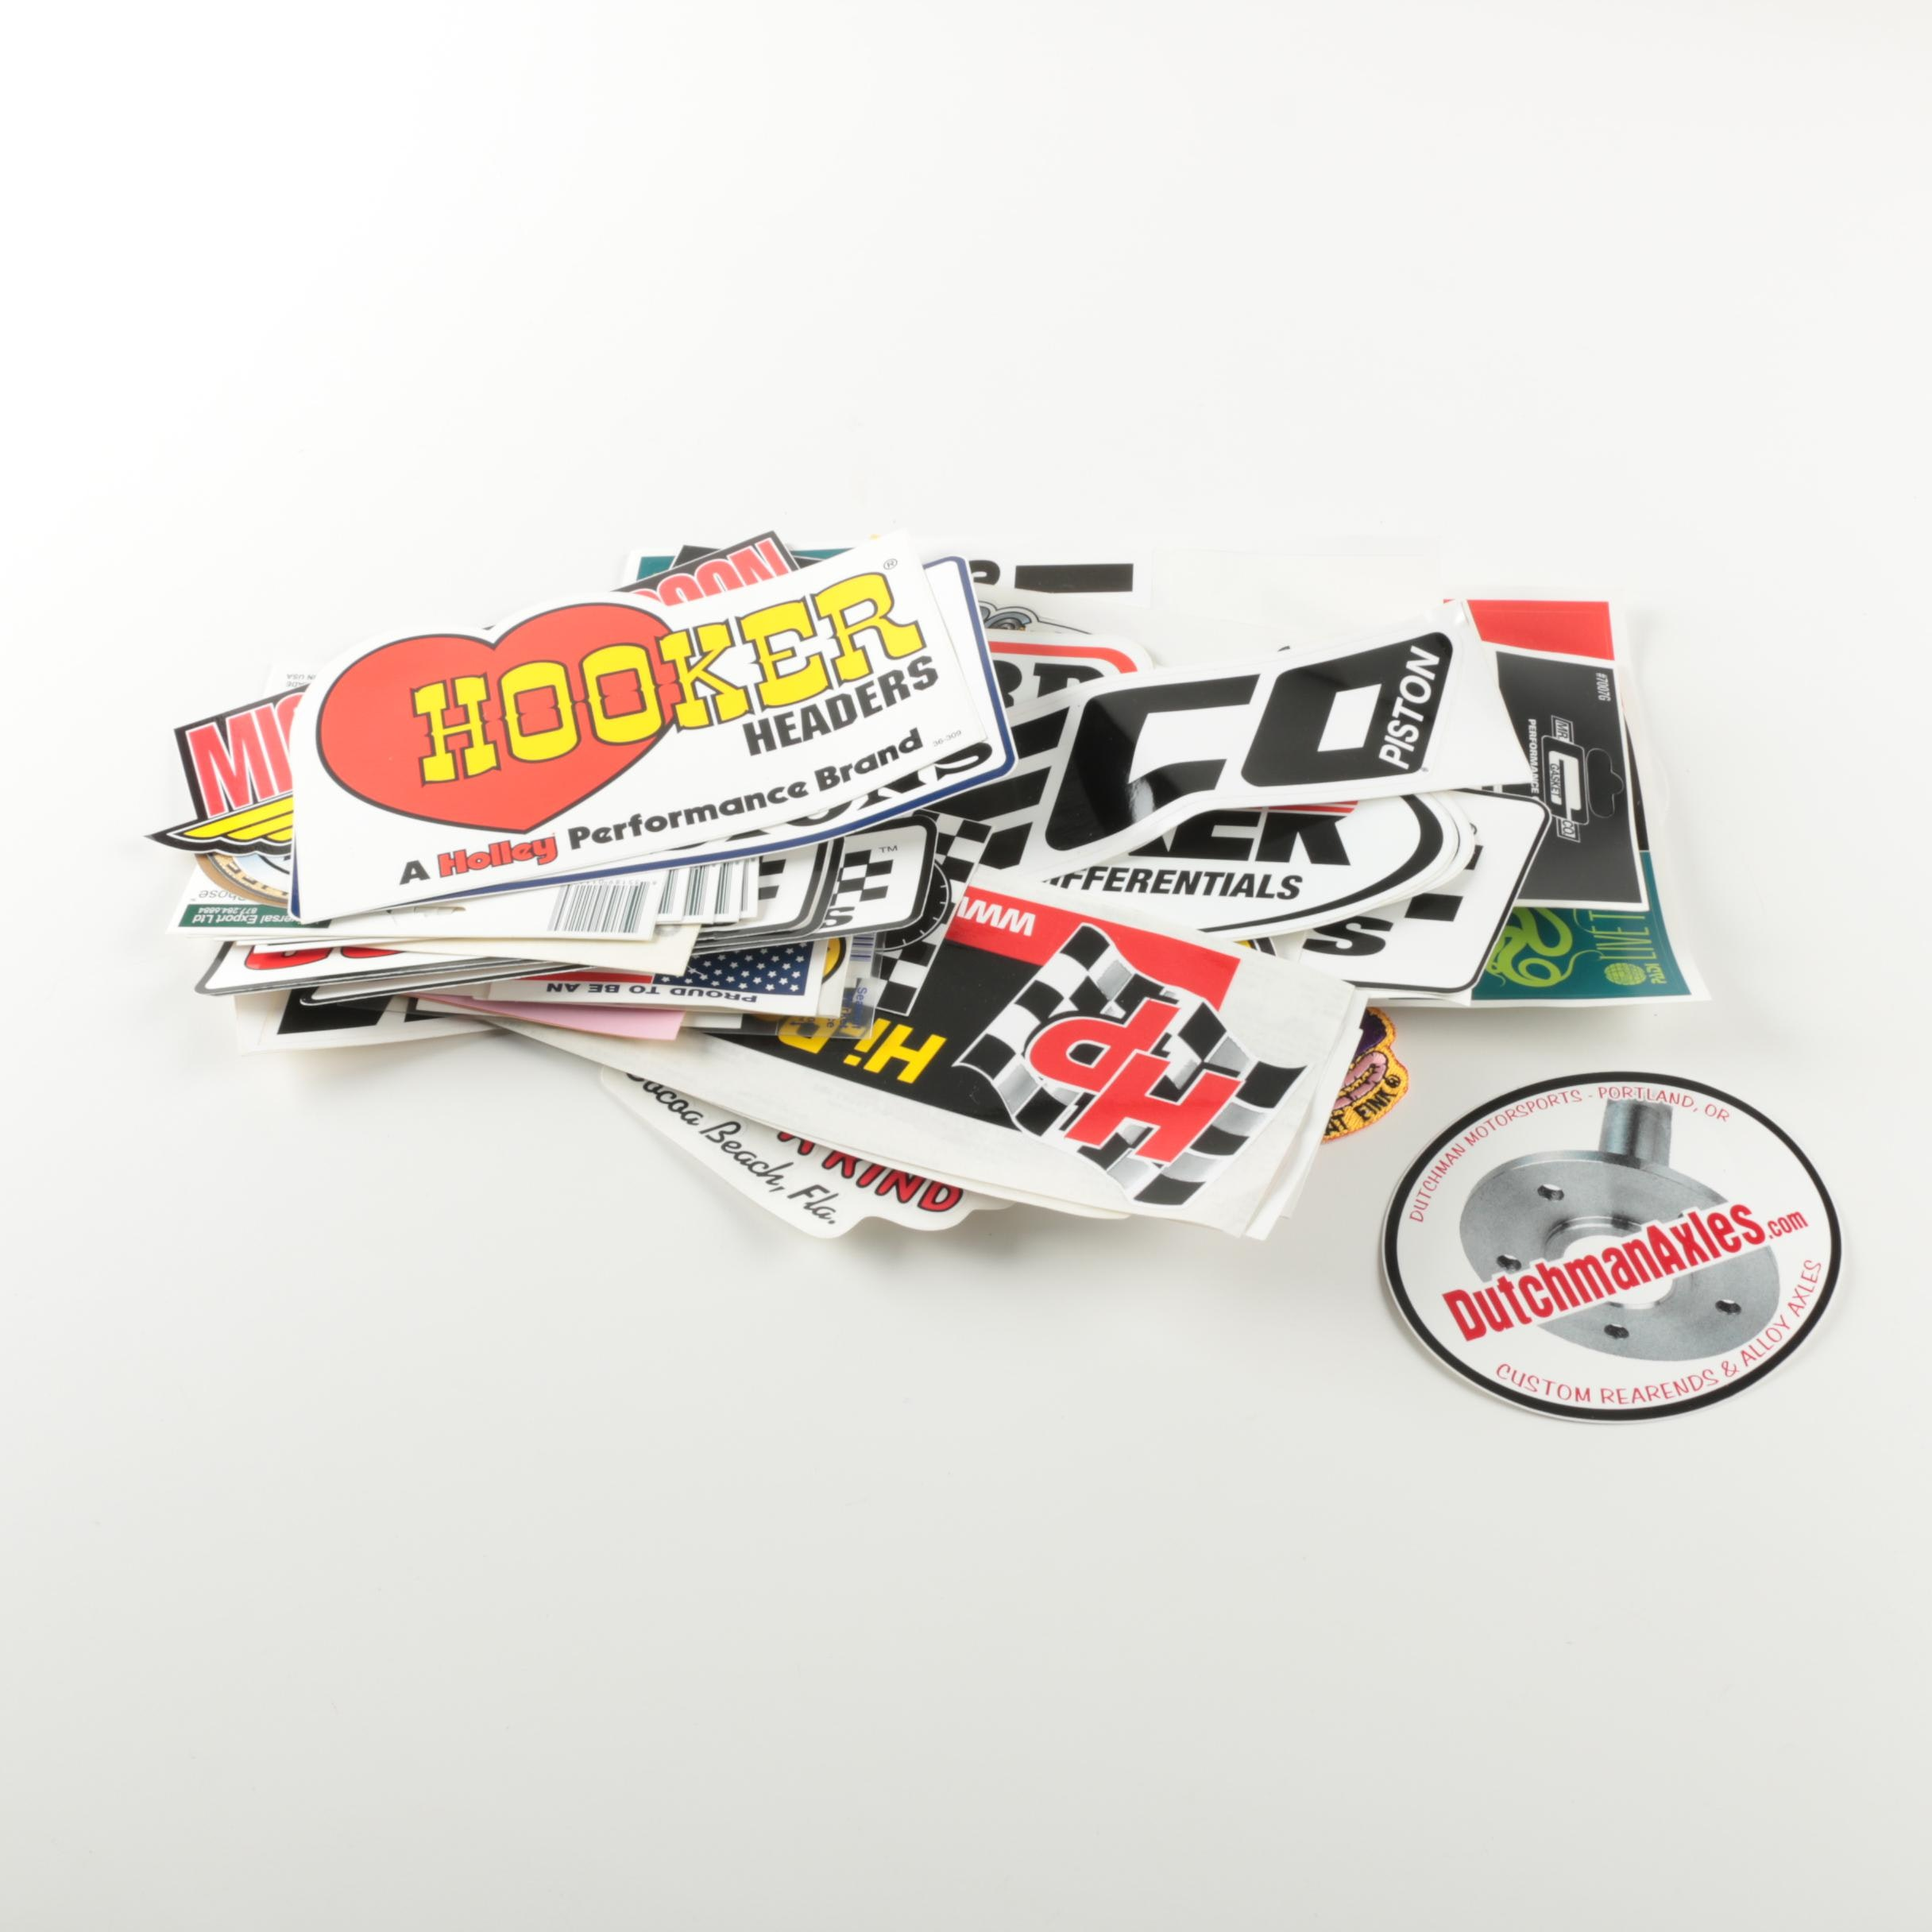 Assorted Stickers Including Sports, Auto Racing, American Patriotic and More.